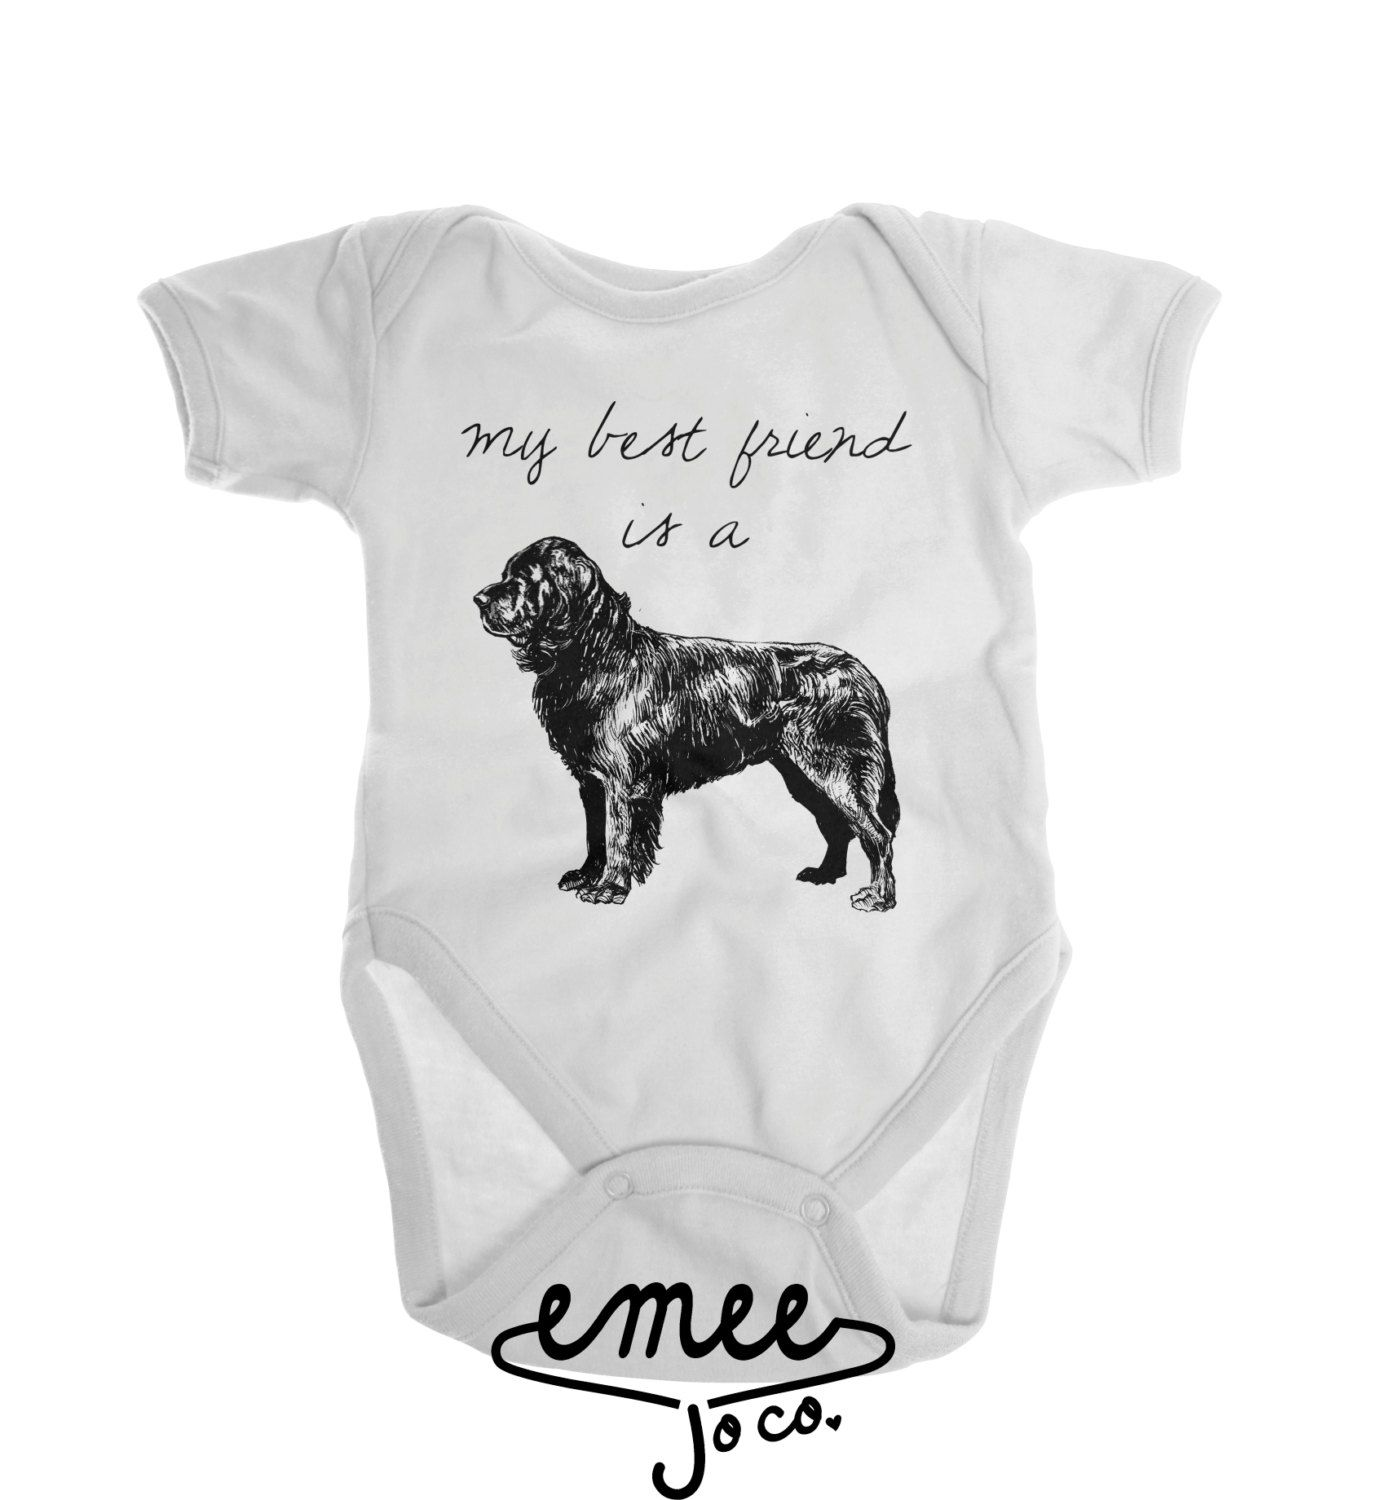 Newfoundland Dog Baby Clothes Dog Baby Clothes Dog and Baby